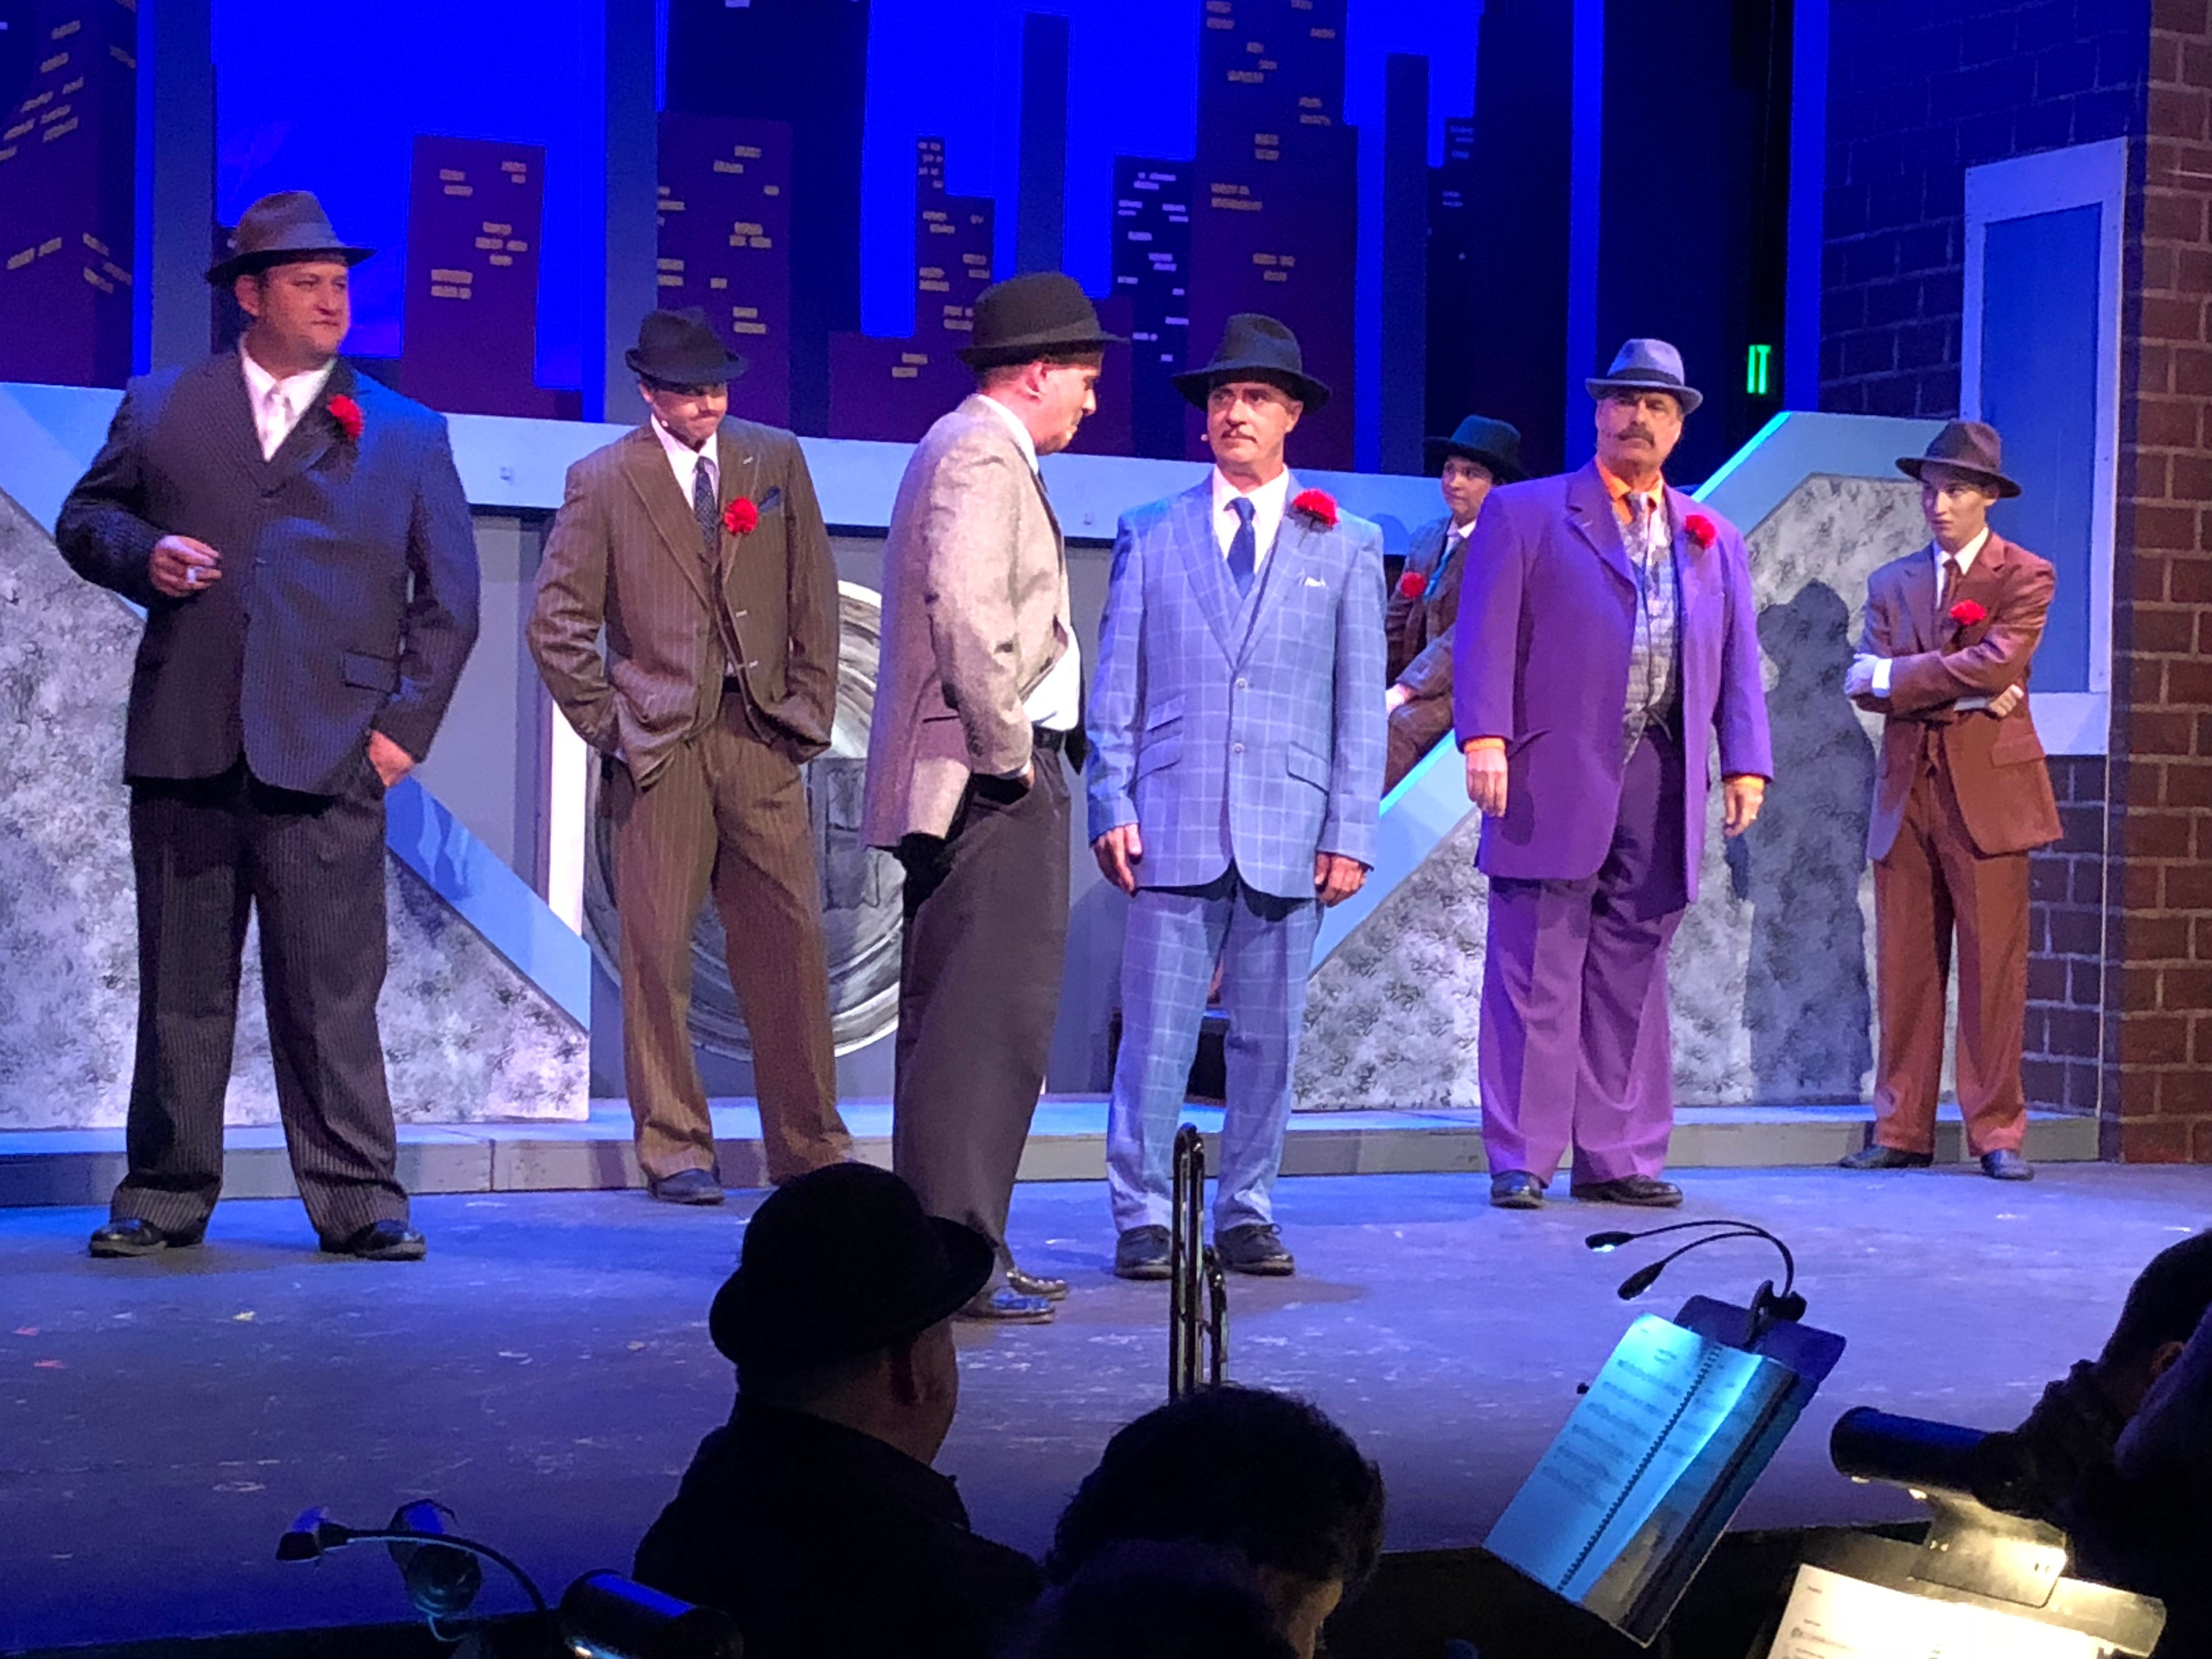 'Cinderella' opens in Ojai, 'Guys and Dolls' continues in Simi, Thousand Oaks